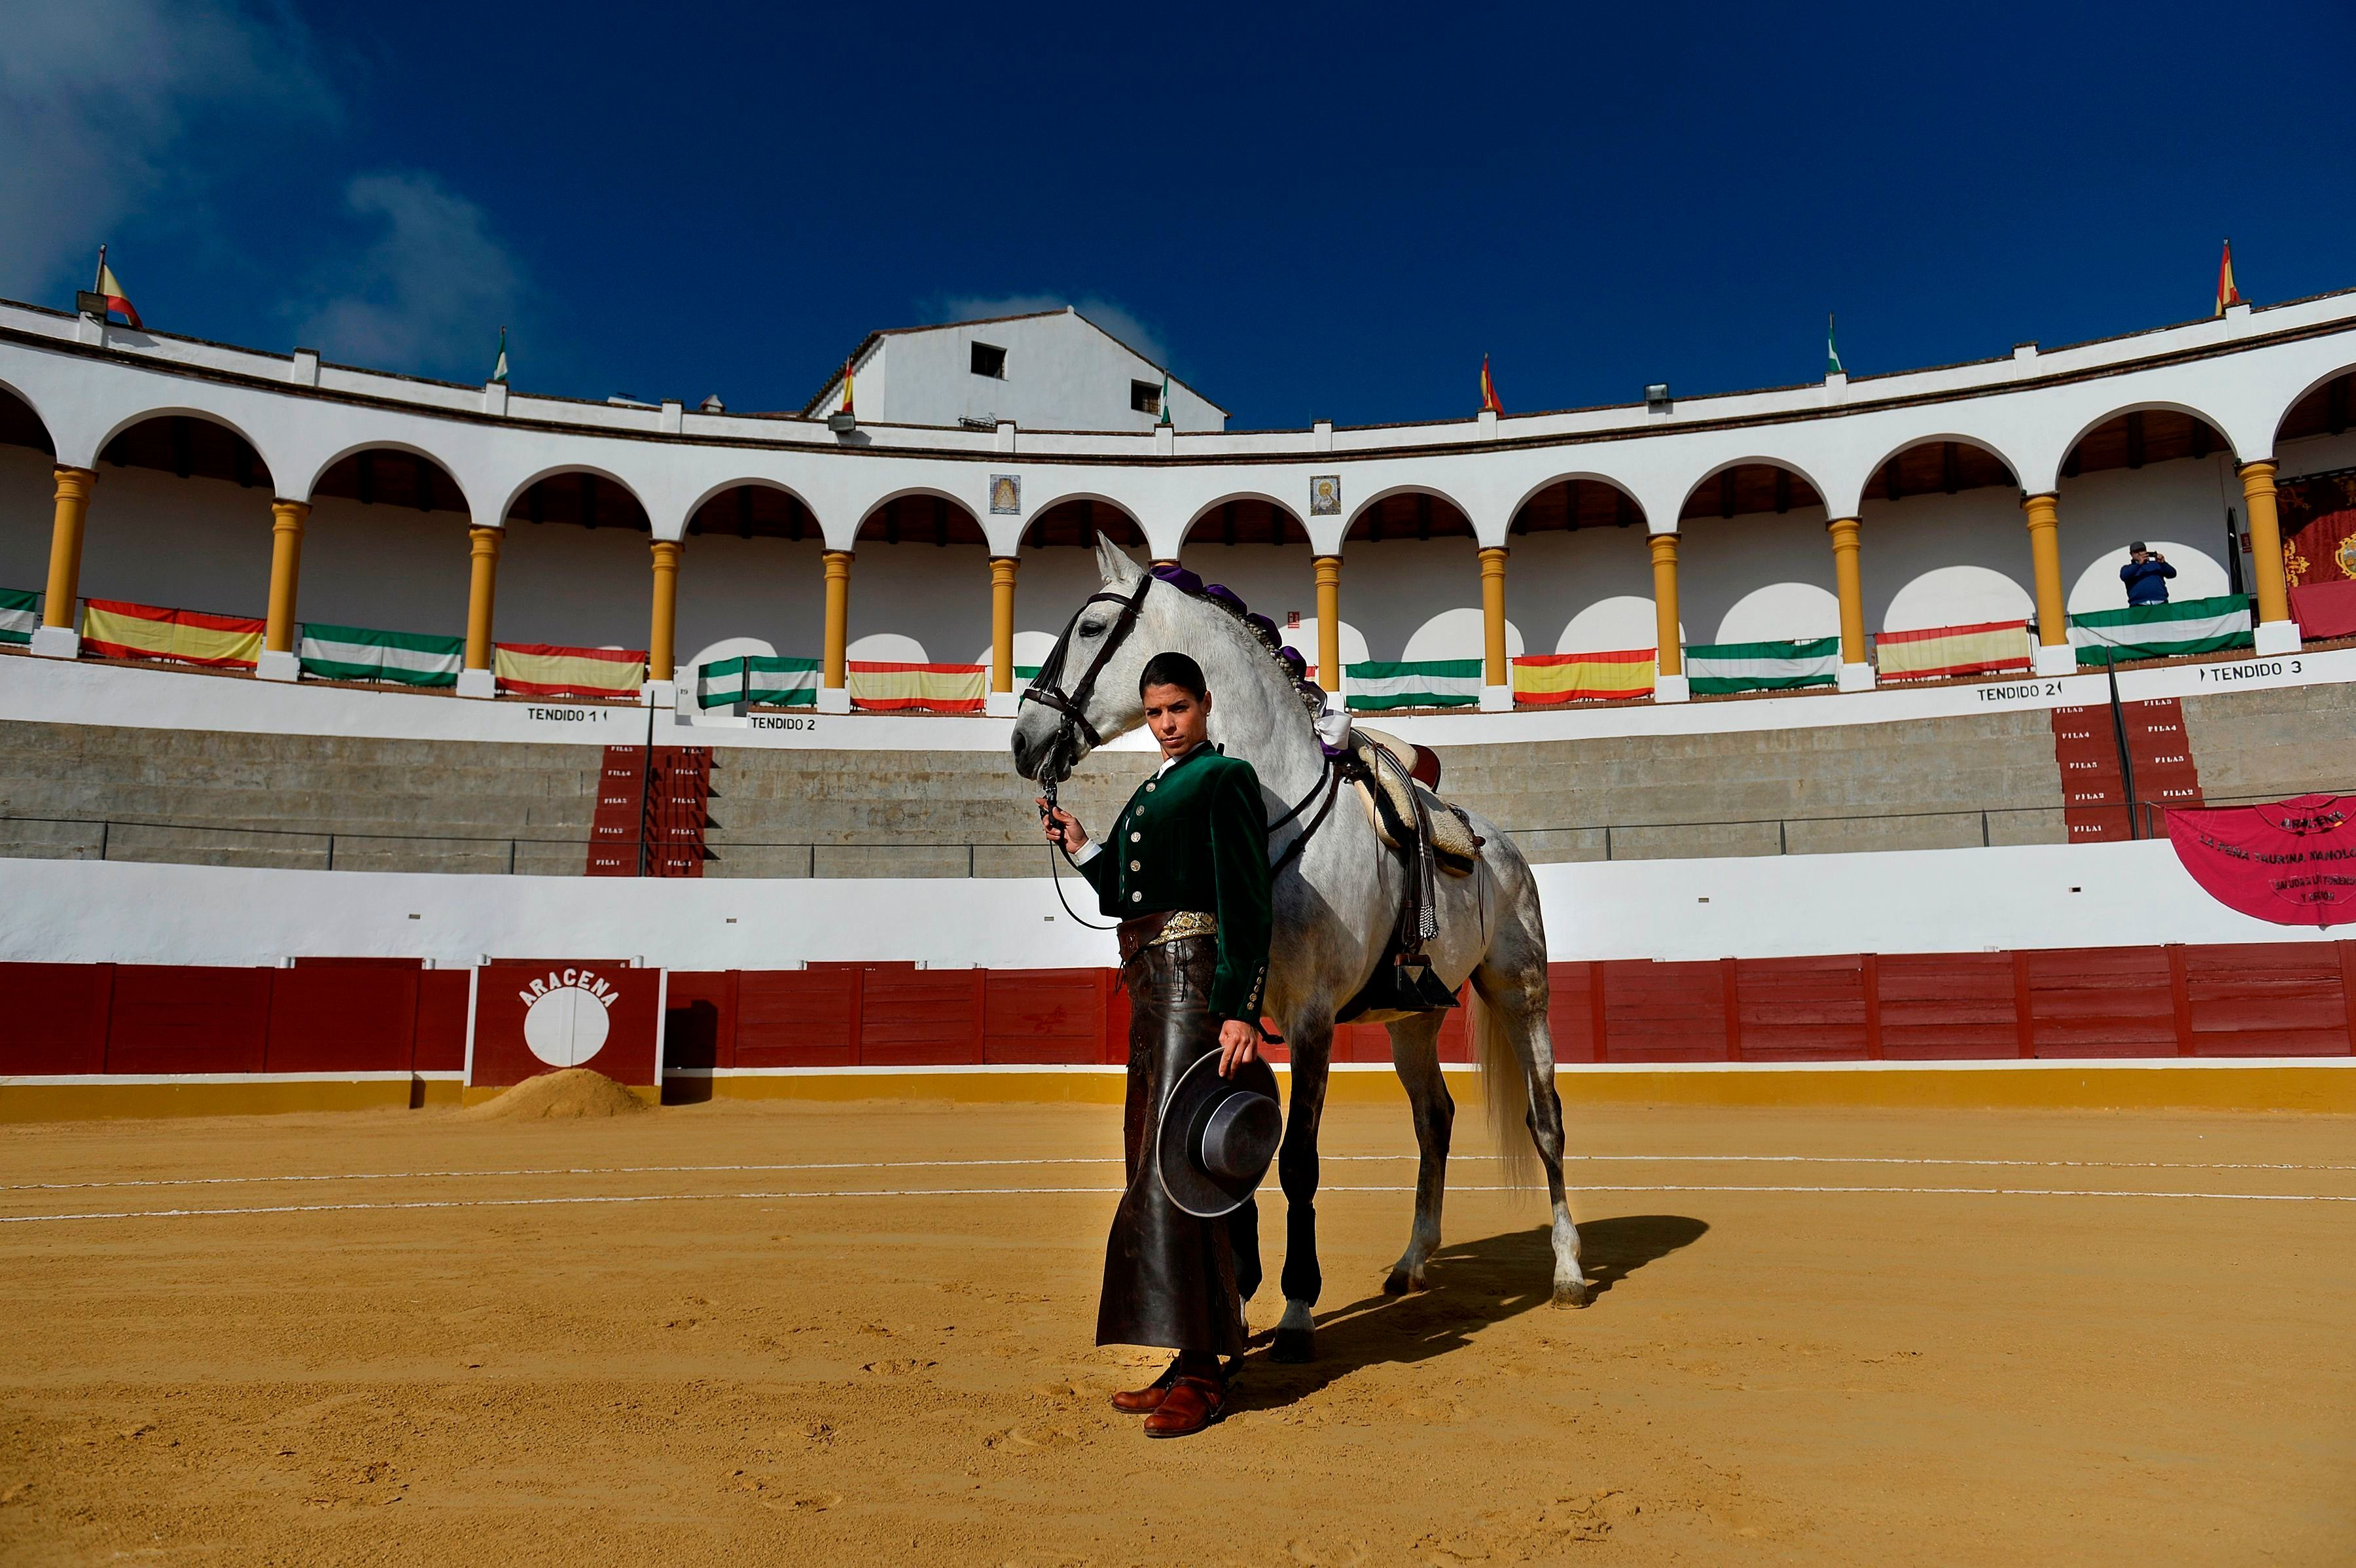 French rejoneadora Lea Vincens, 33, poses at the Aracena bullring, in Huelva, southern Spain on February 25, 2018. A rejoneadora is a mounted bullfighter who uses a lance.   / AFP PHOTO / Cristina Quicler        (Photo credit should read CRISTINA QUICLER/AFP/Getty Images)